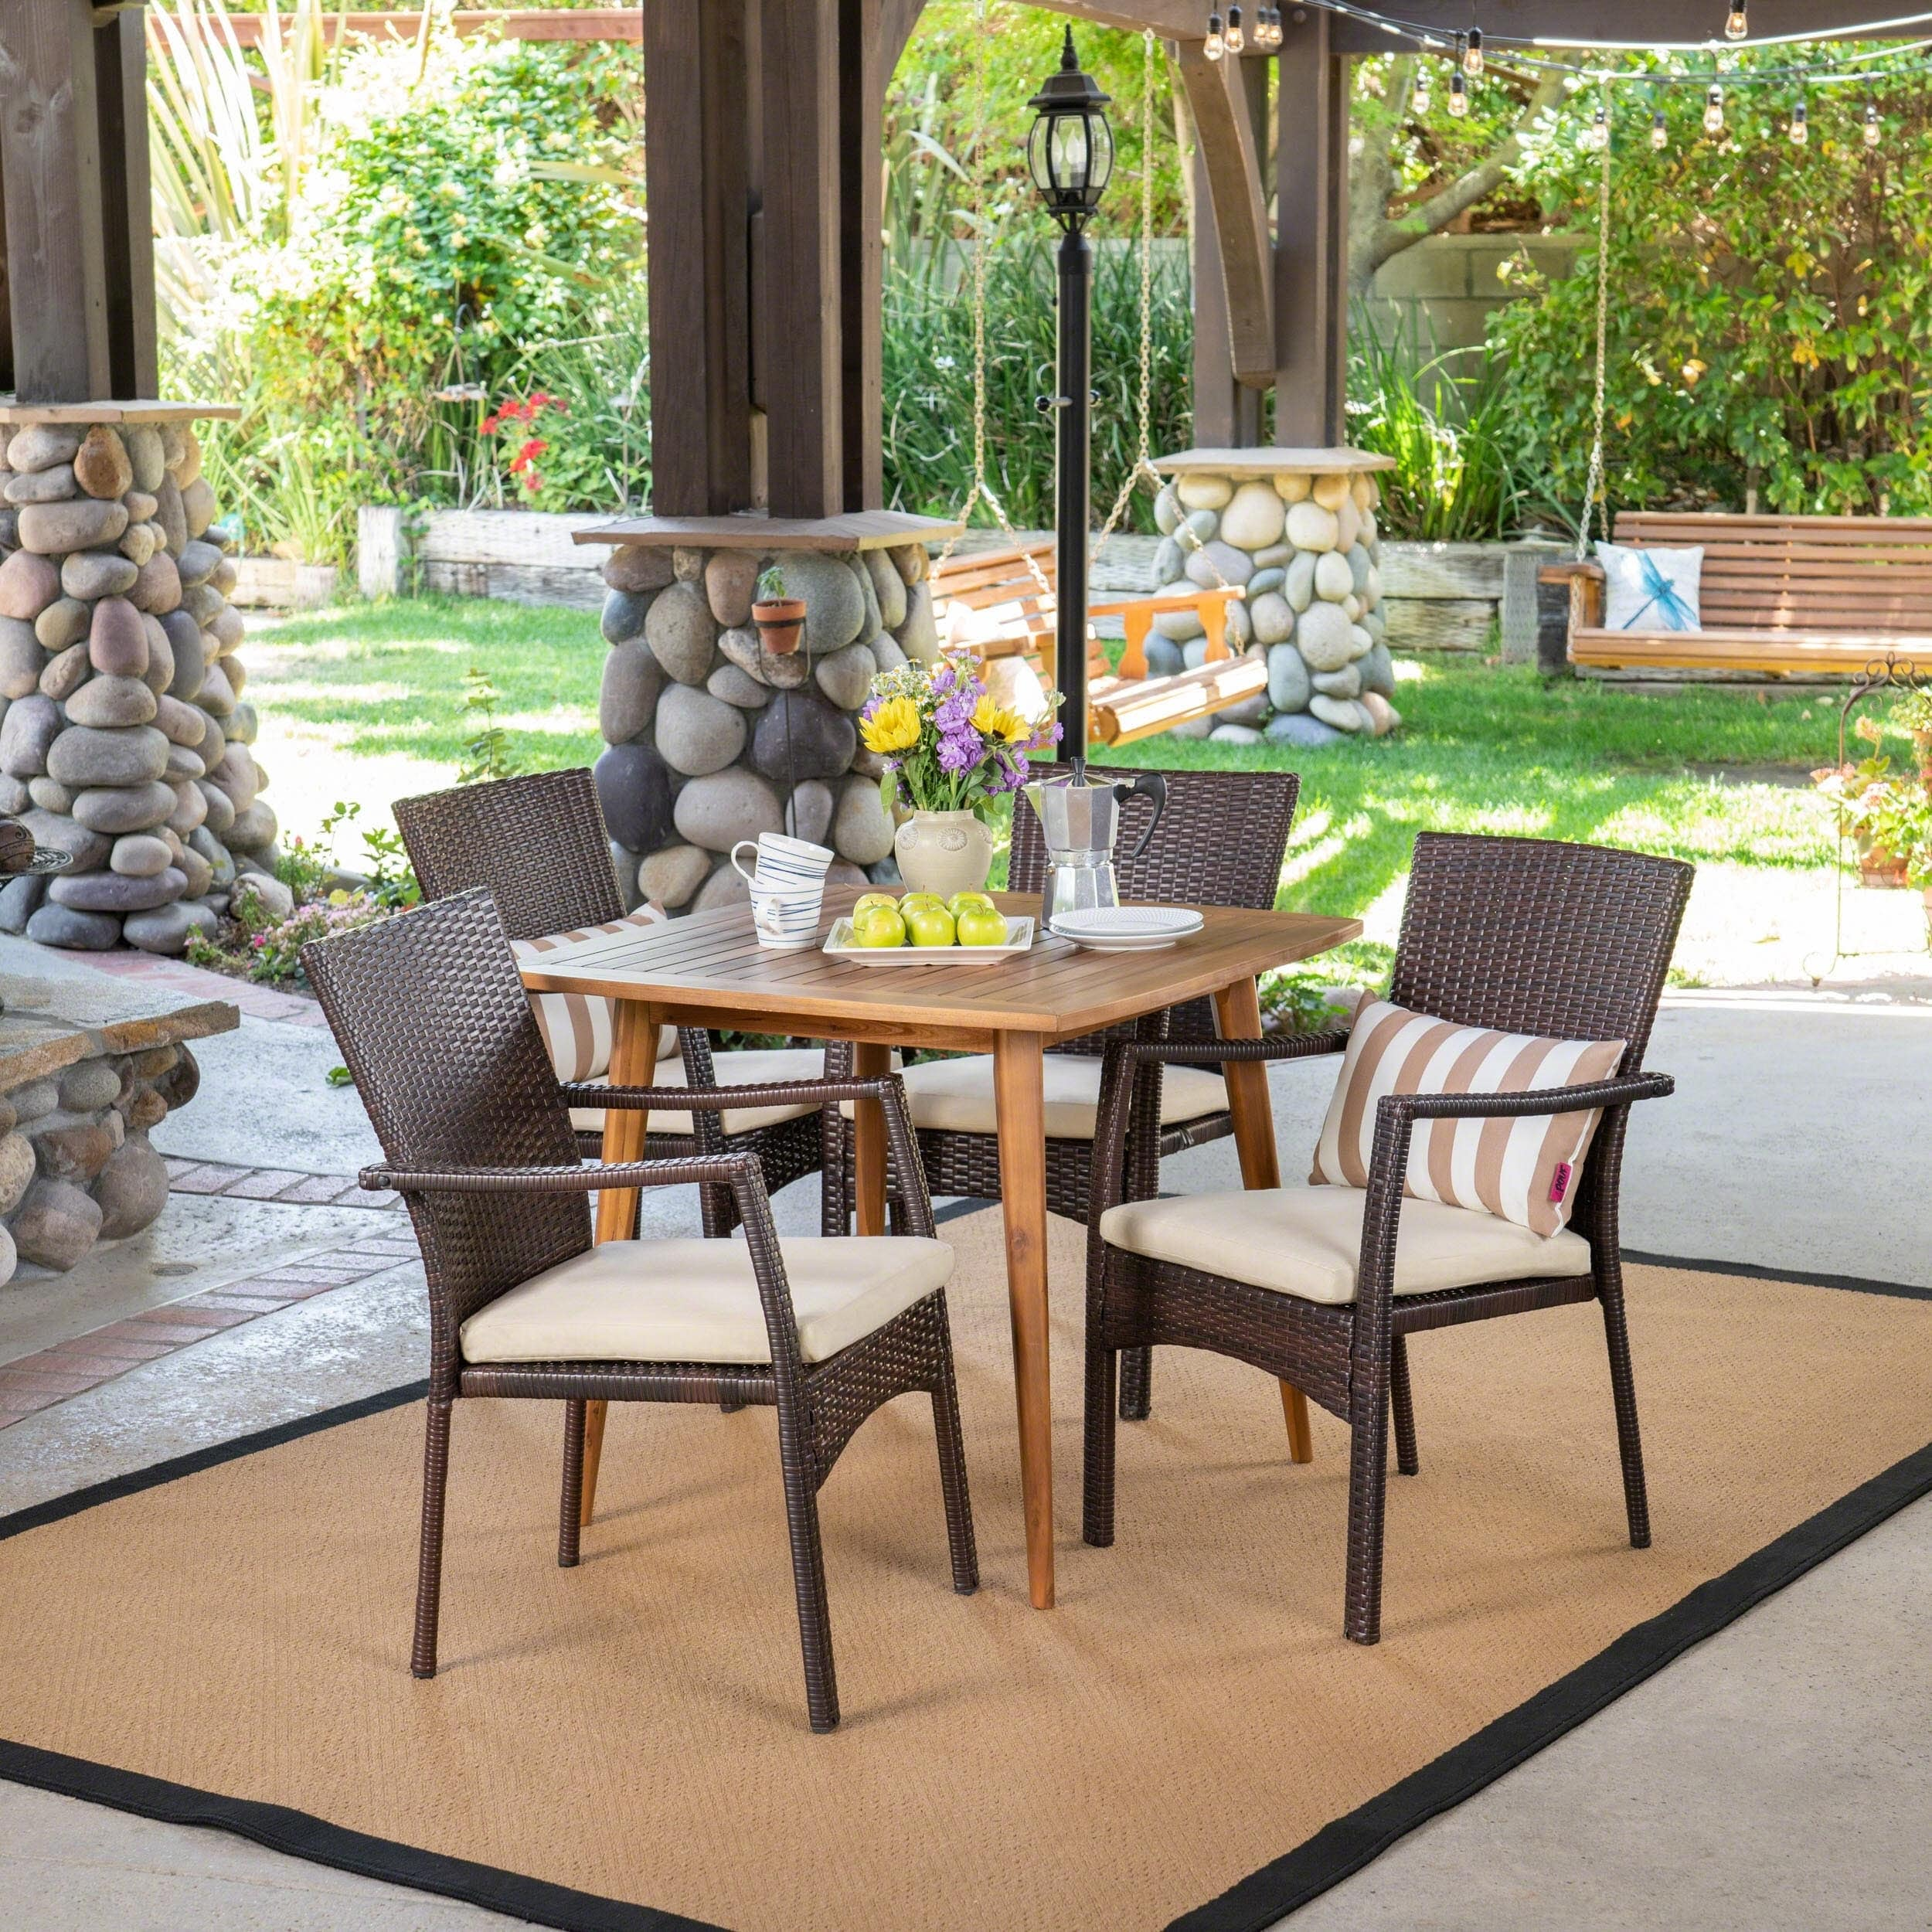 Christopher Knight Home Marias Outdoor 5 Piece Wood and Wicker Dining Set by